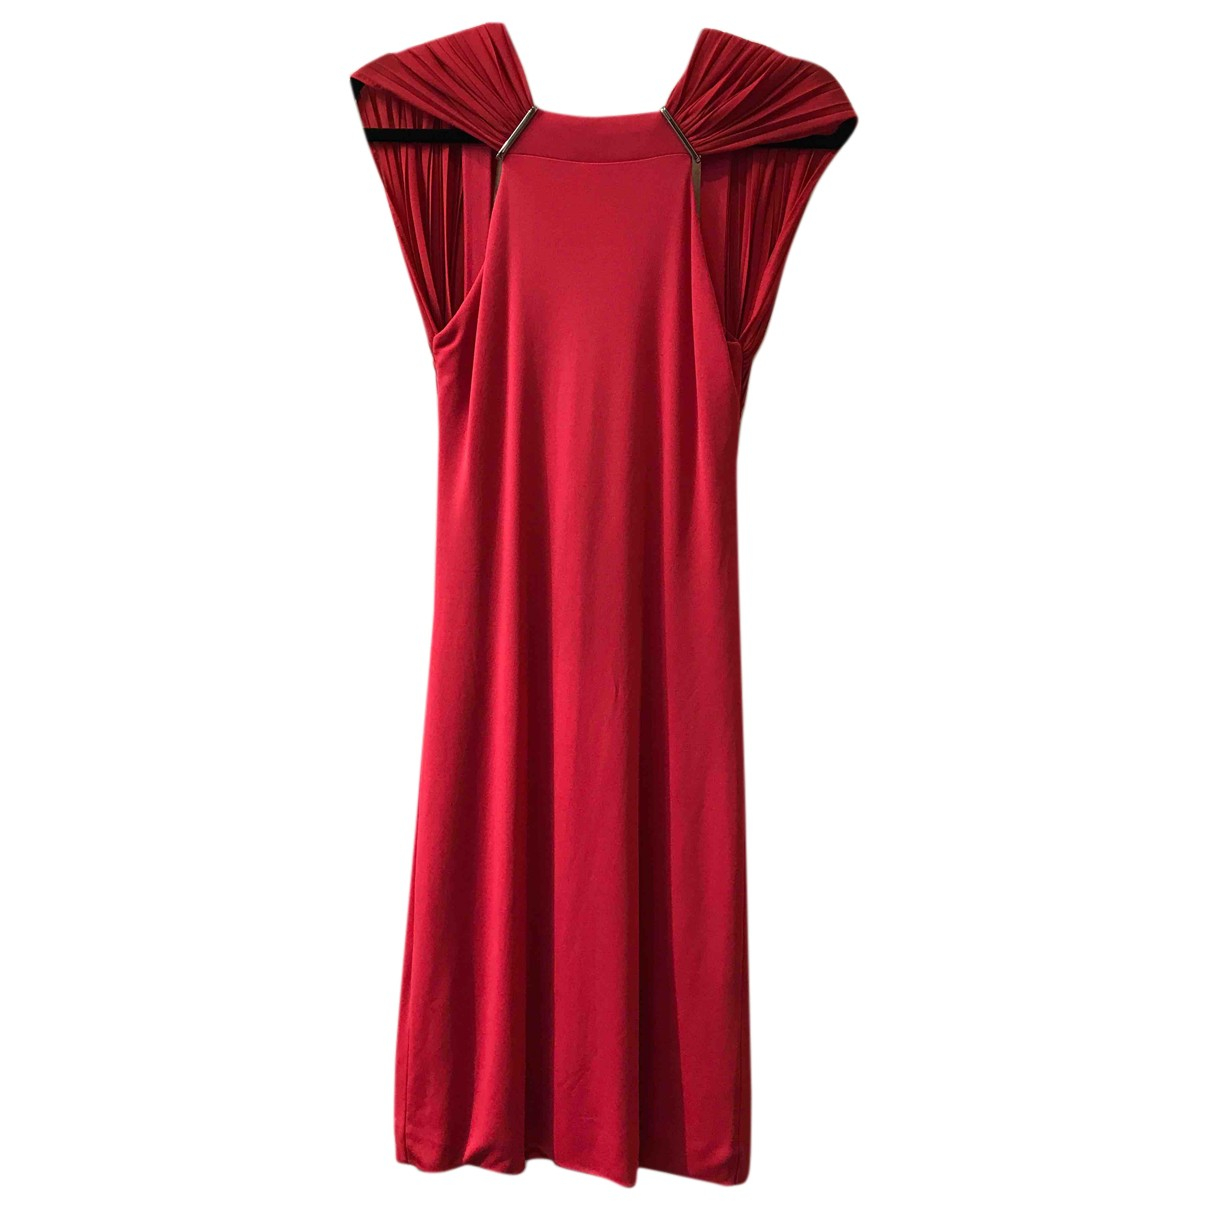 Gucci N Red dress for Women 38 FR